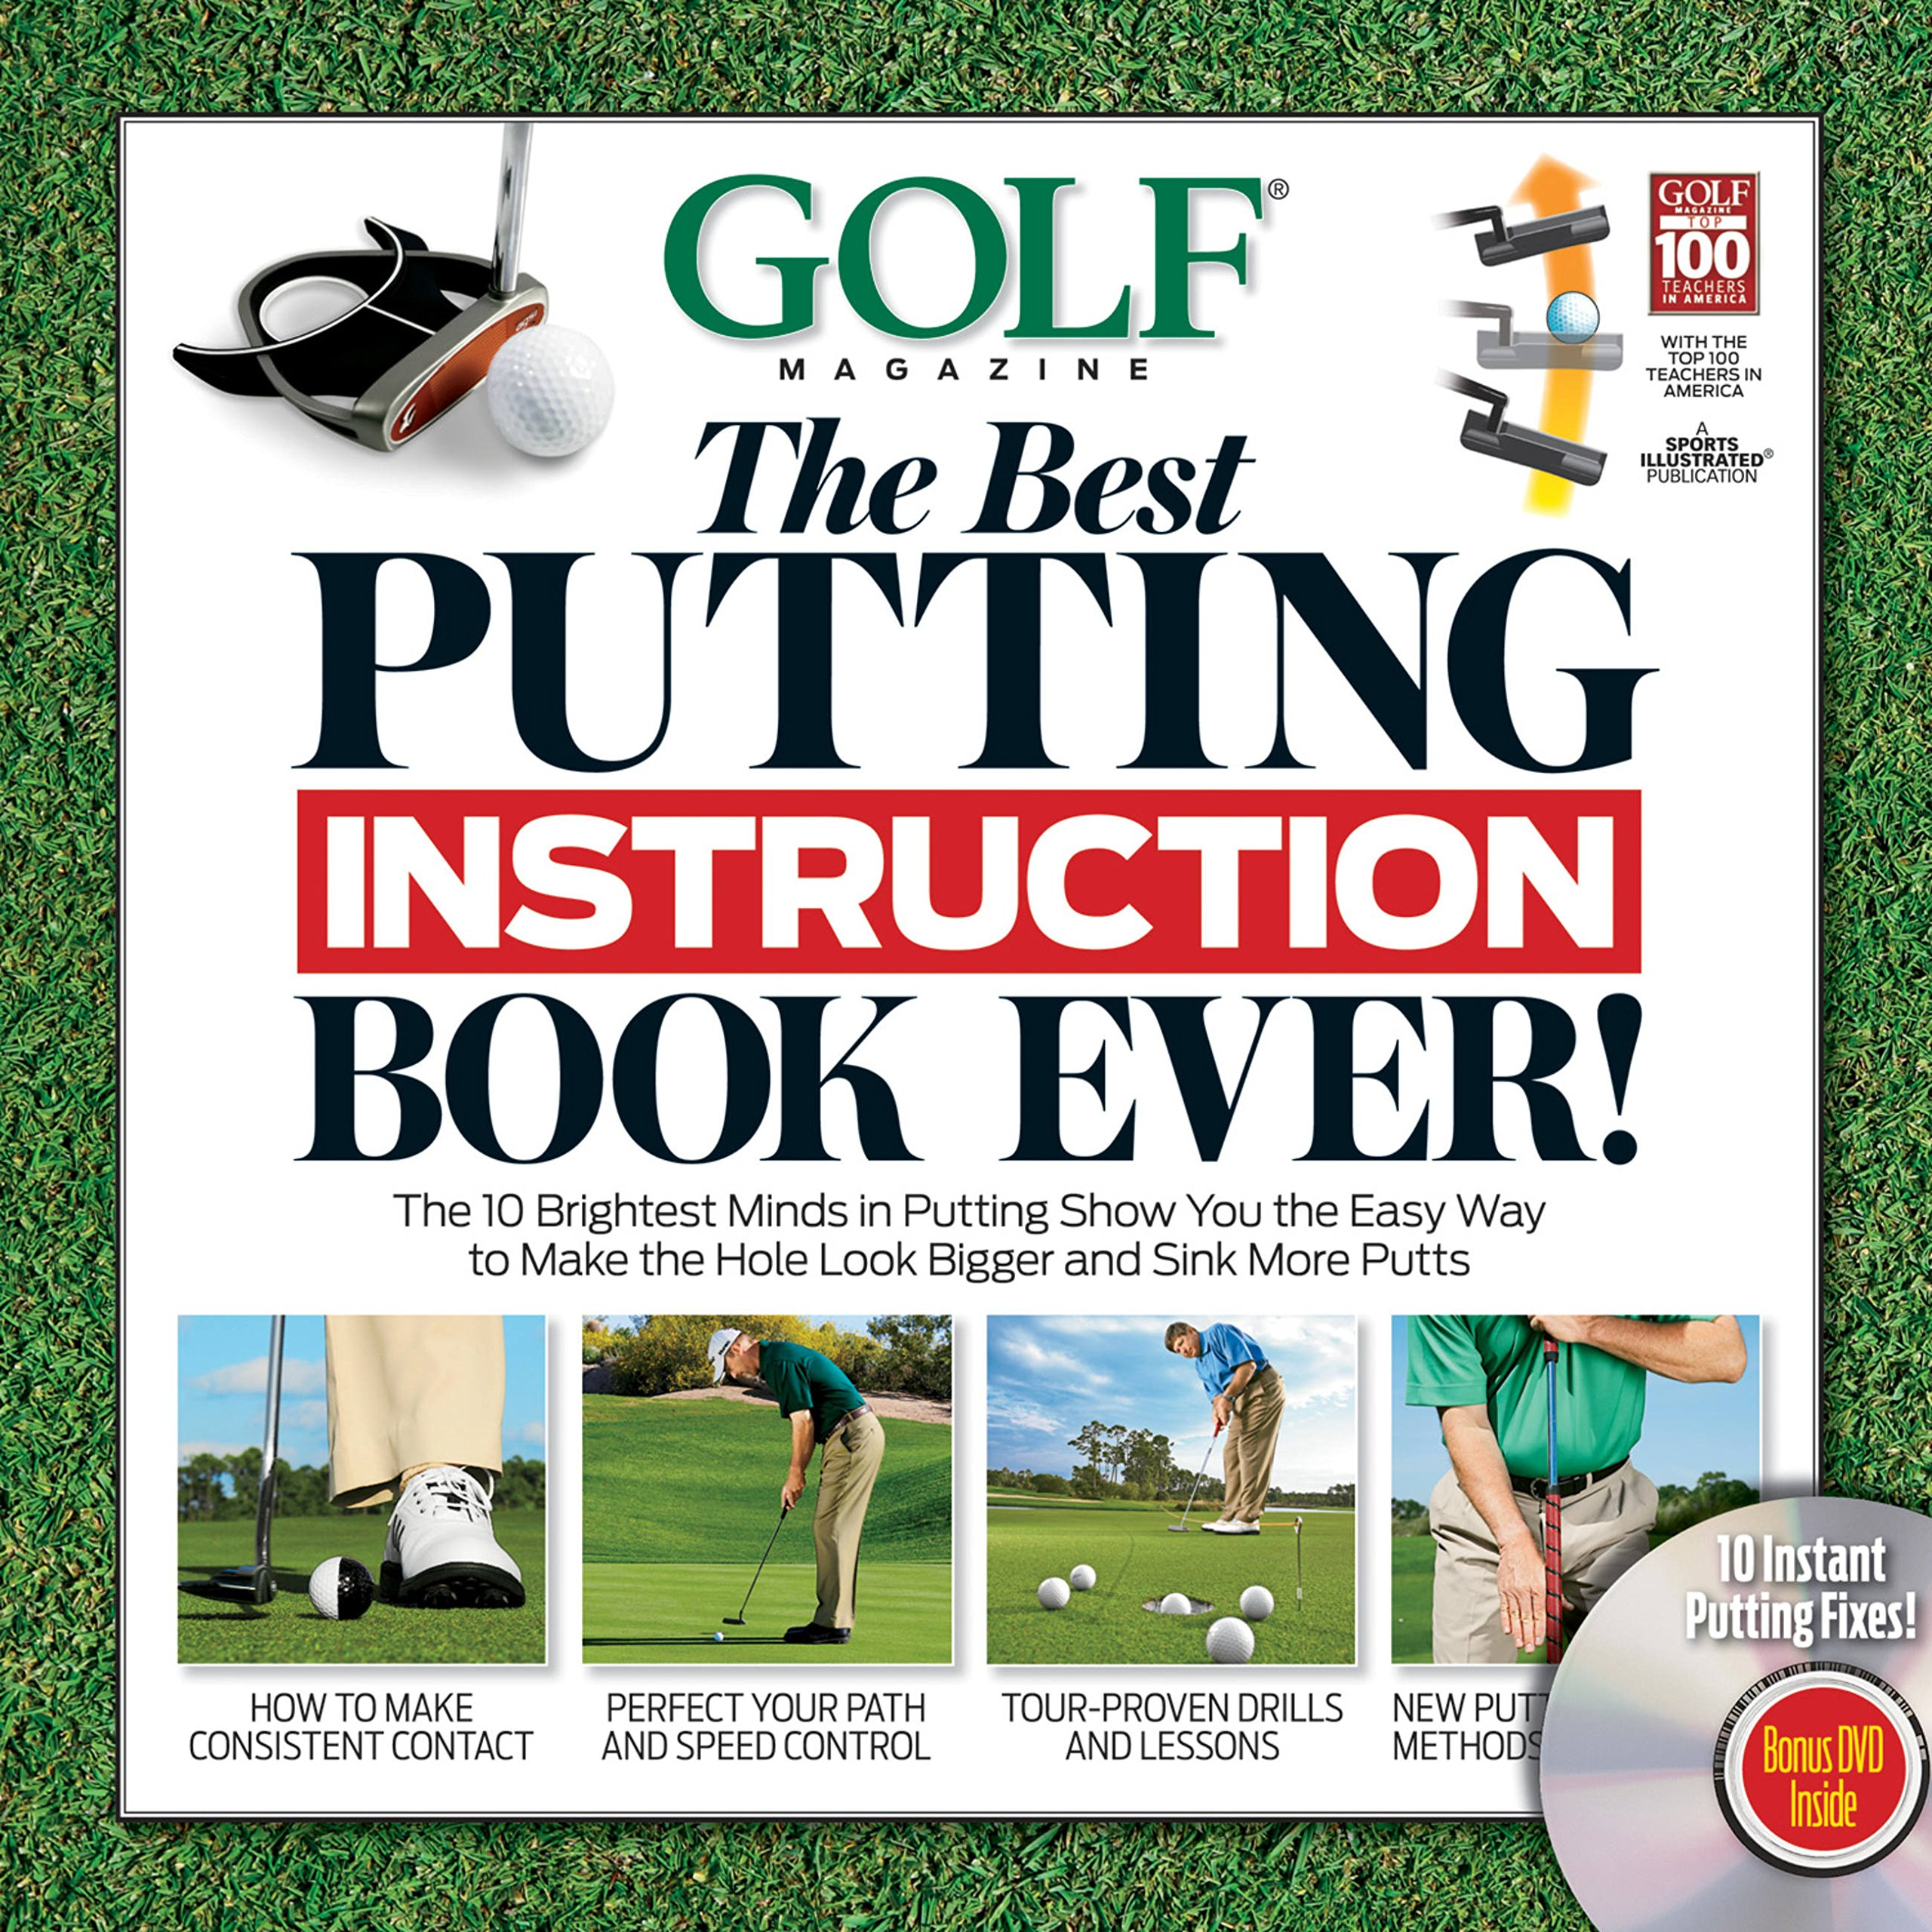 GOLF The Best Putting Instruction Book Ever!: Editors of Golf Magazine:  9781603201483: Amazon.com: Books